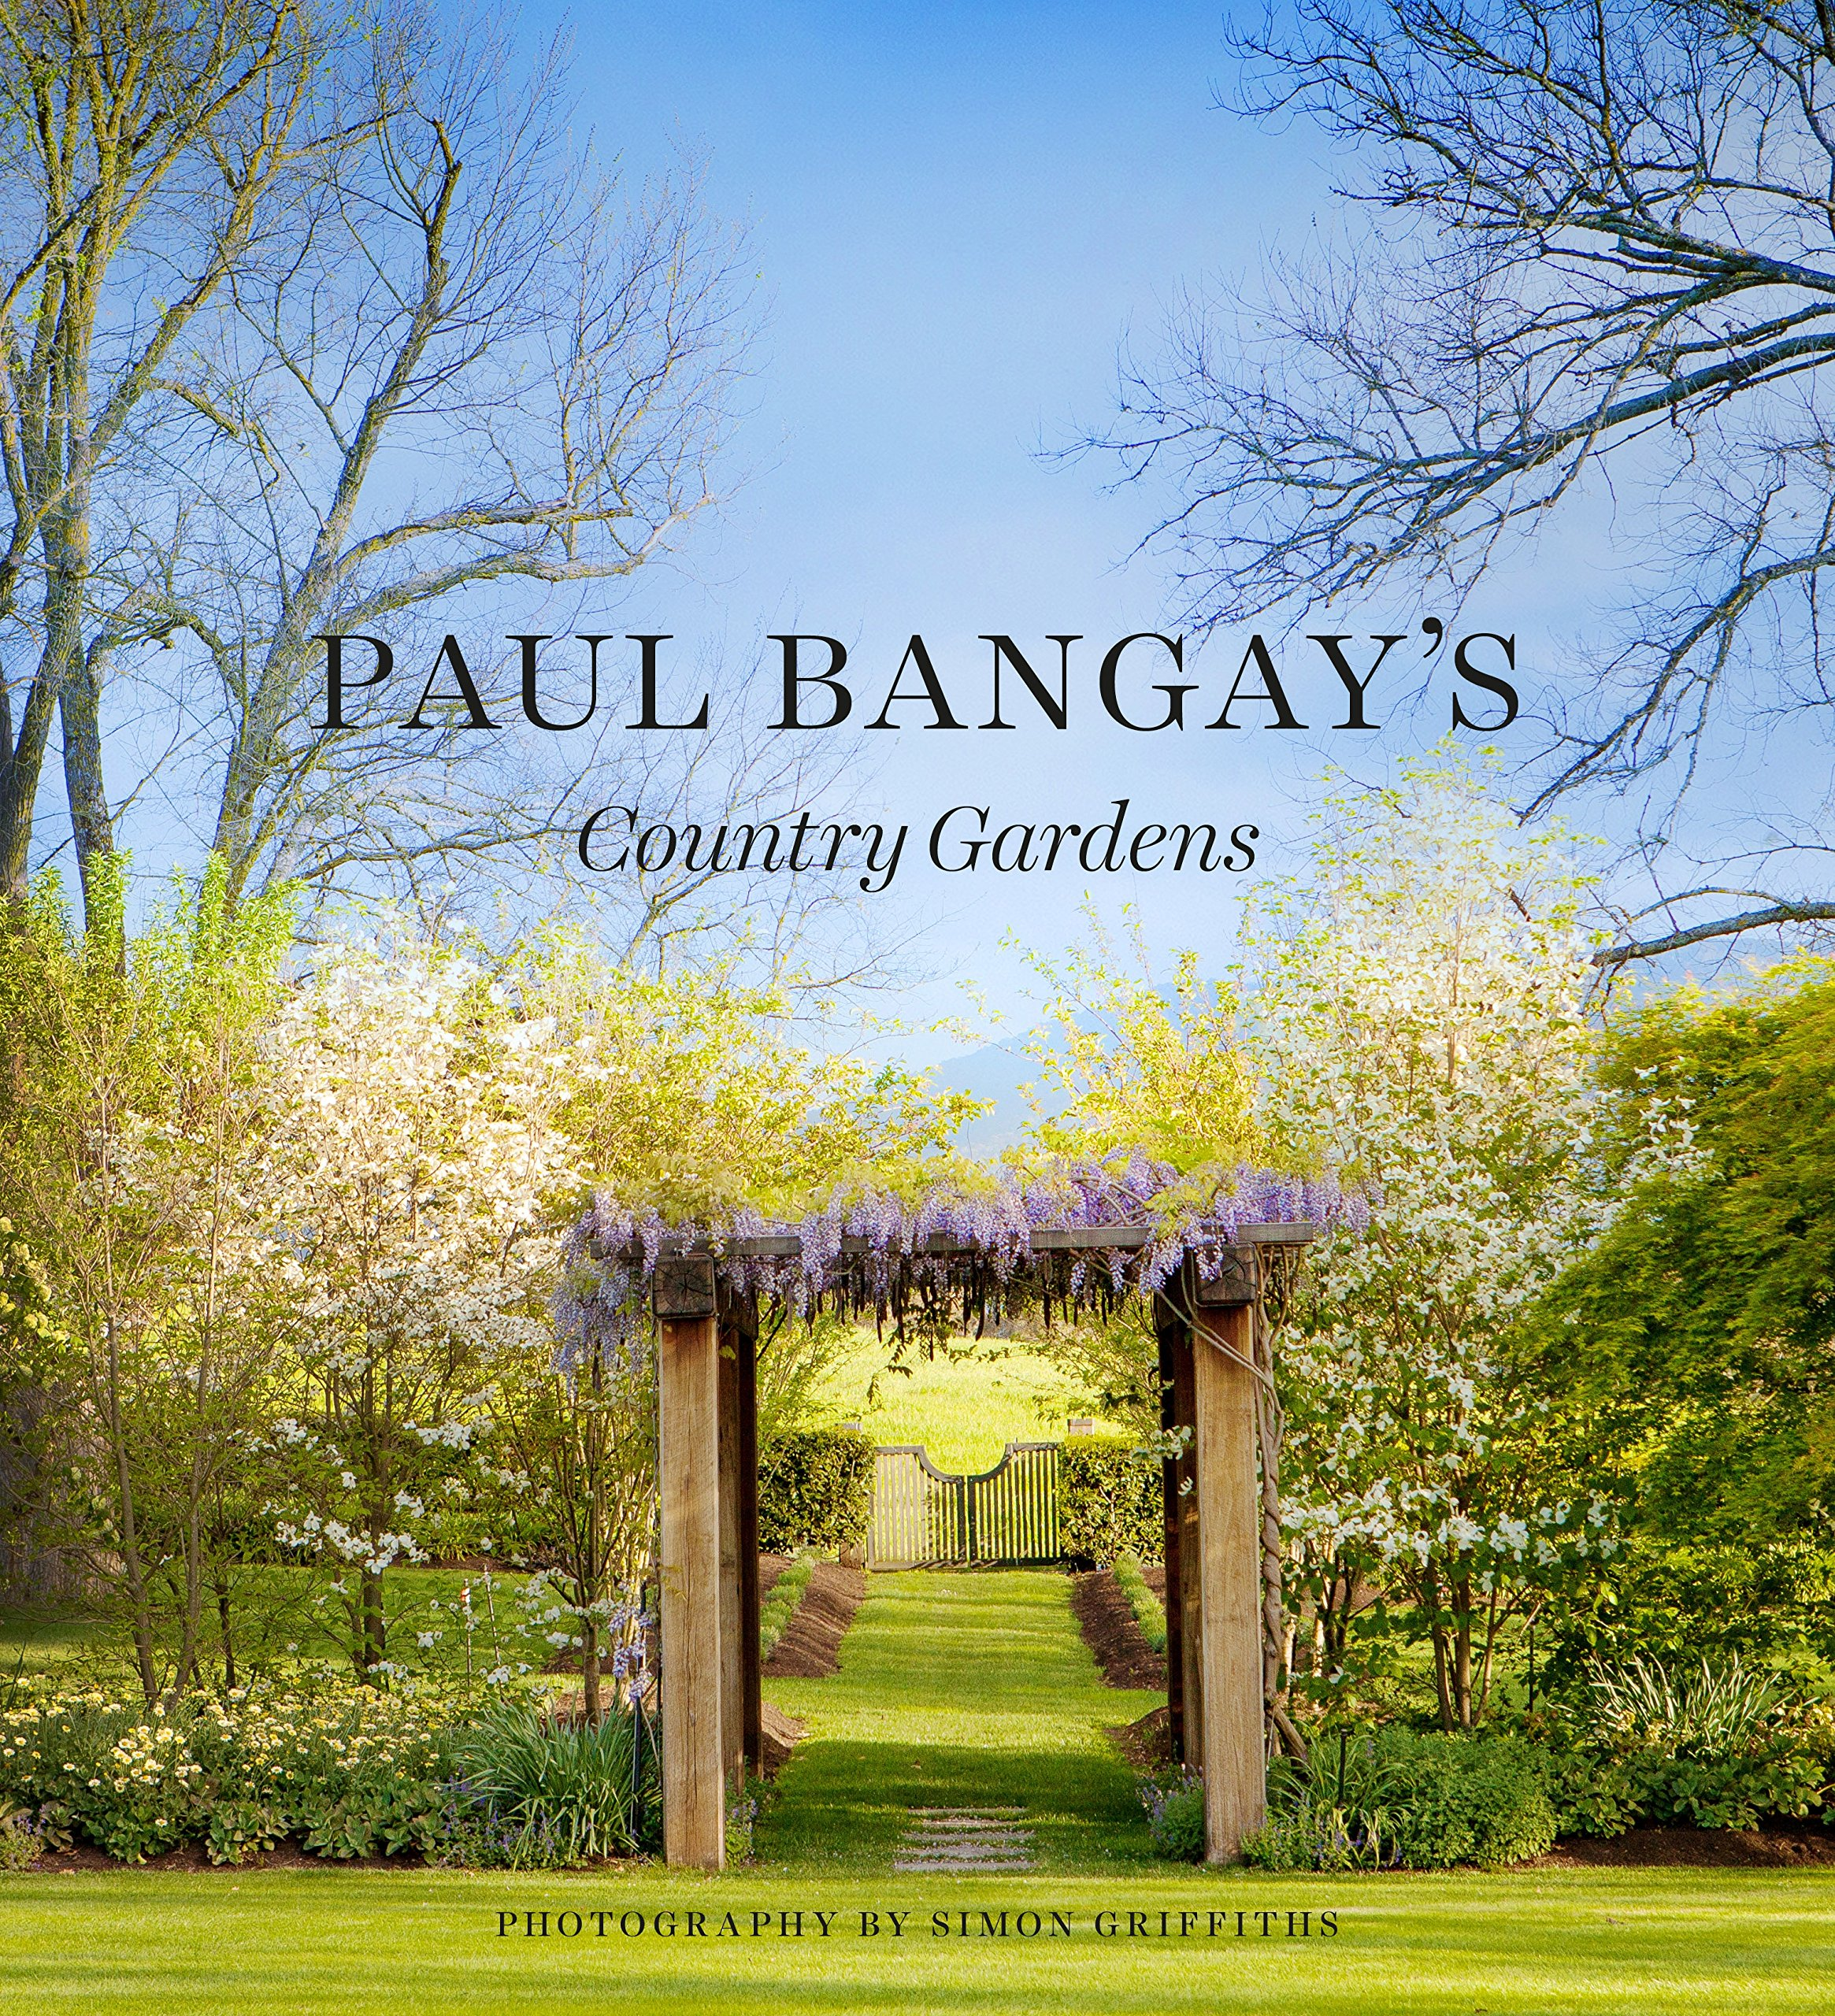 amazon.com: paul bangayu0027s country gardens (9781921383991): paul bangay:  books FYCZMBO